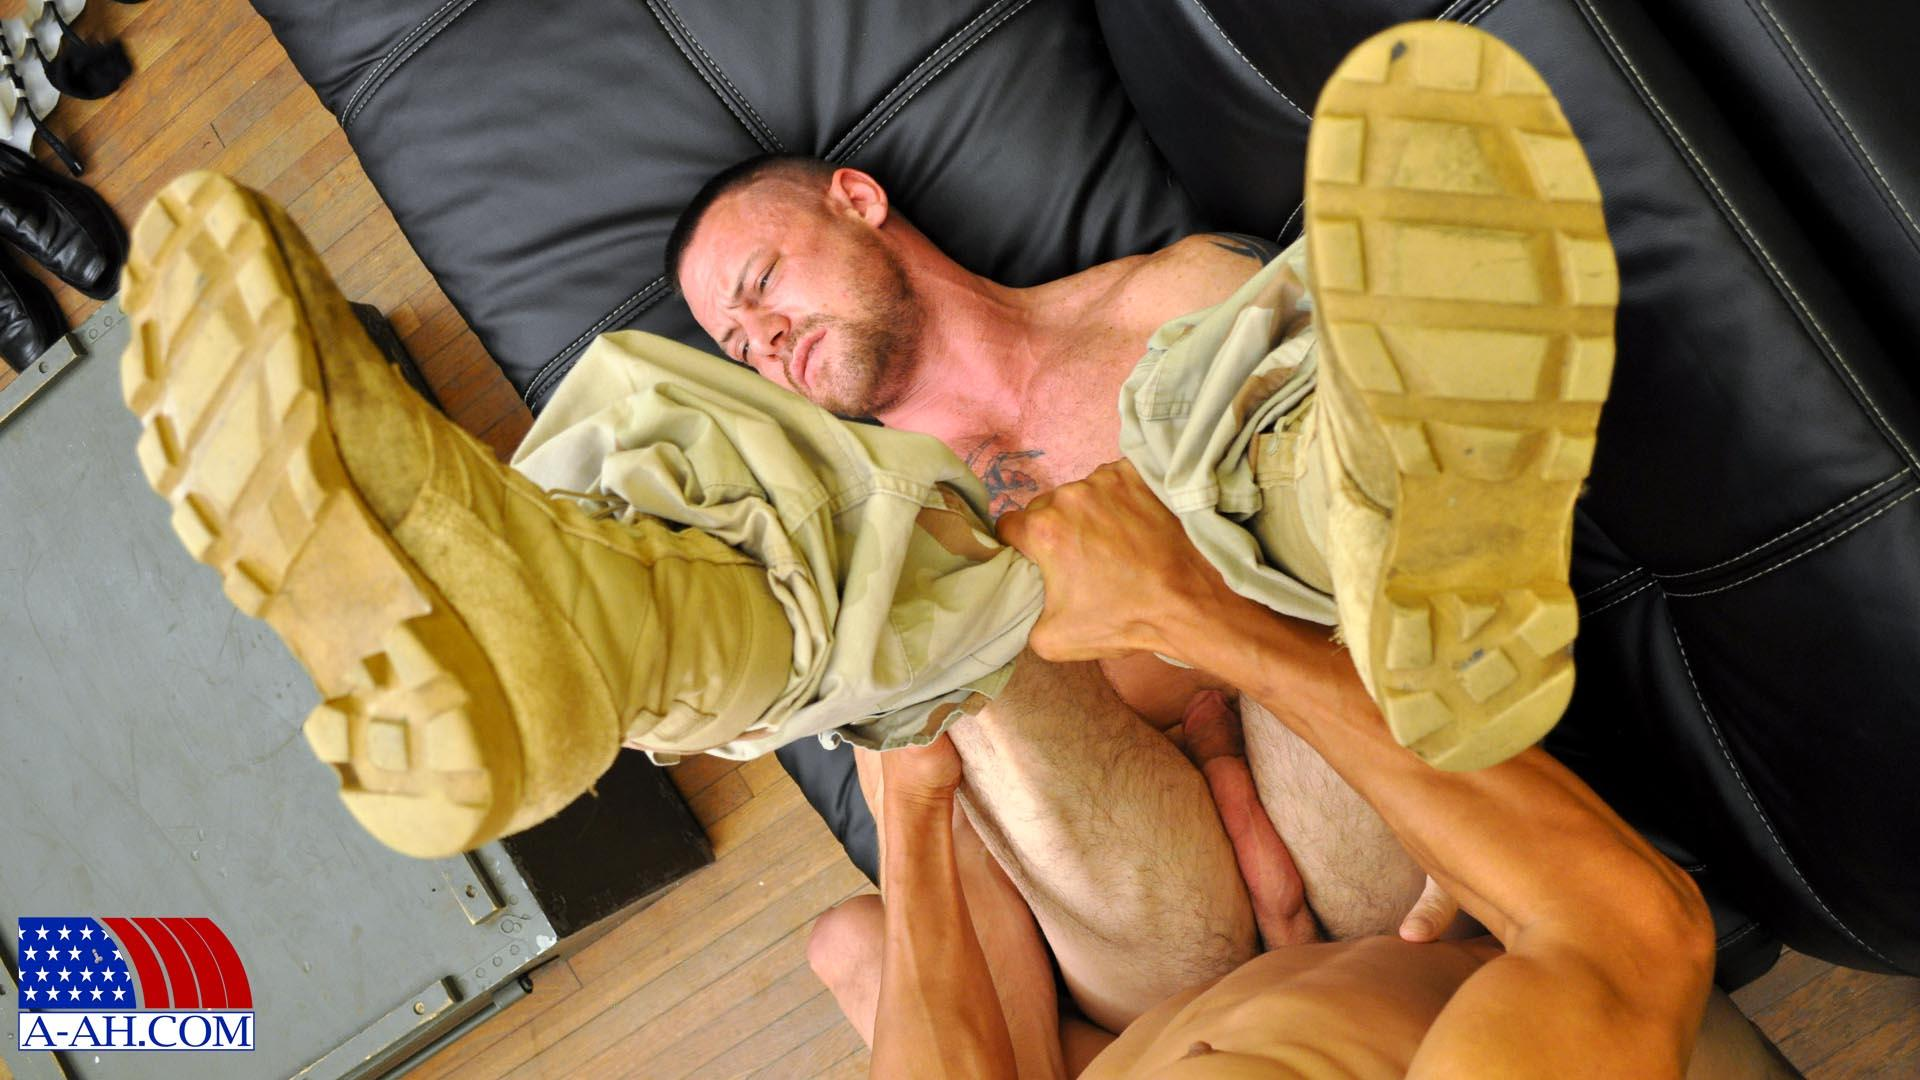 All-American-Heroes-Navy-Petty-Officer-Eddy-fucking-Army-Sergeant-Miles-Big-Uncut-Cock-Amateur-Gay-Porn-07 Navy Petty Officer Fucks A Muscle Army Sergeant